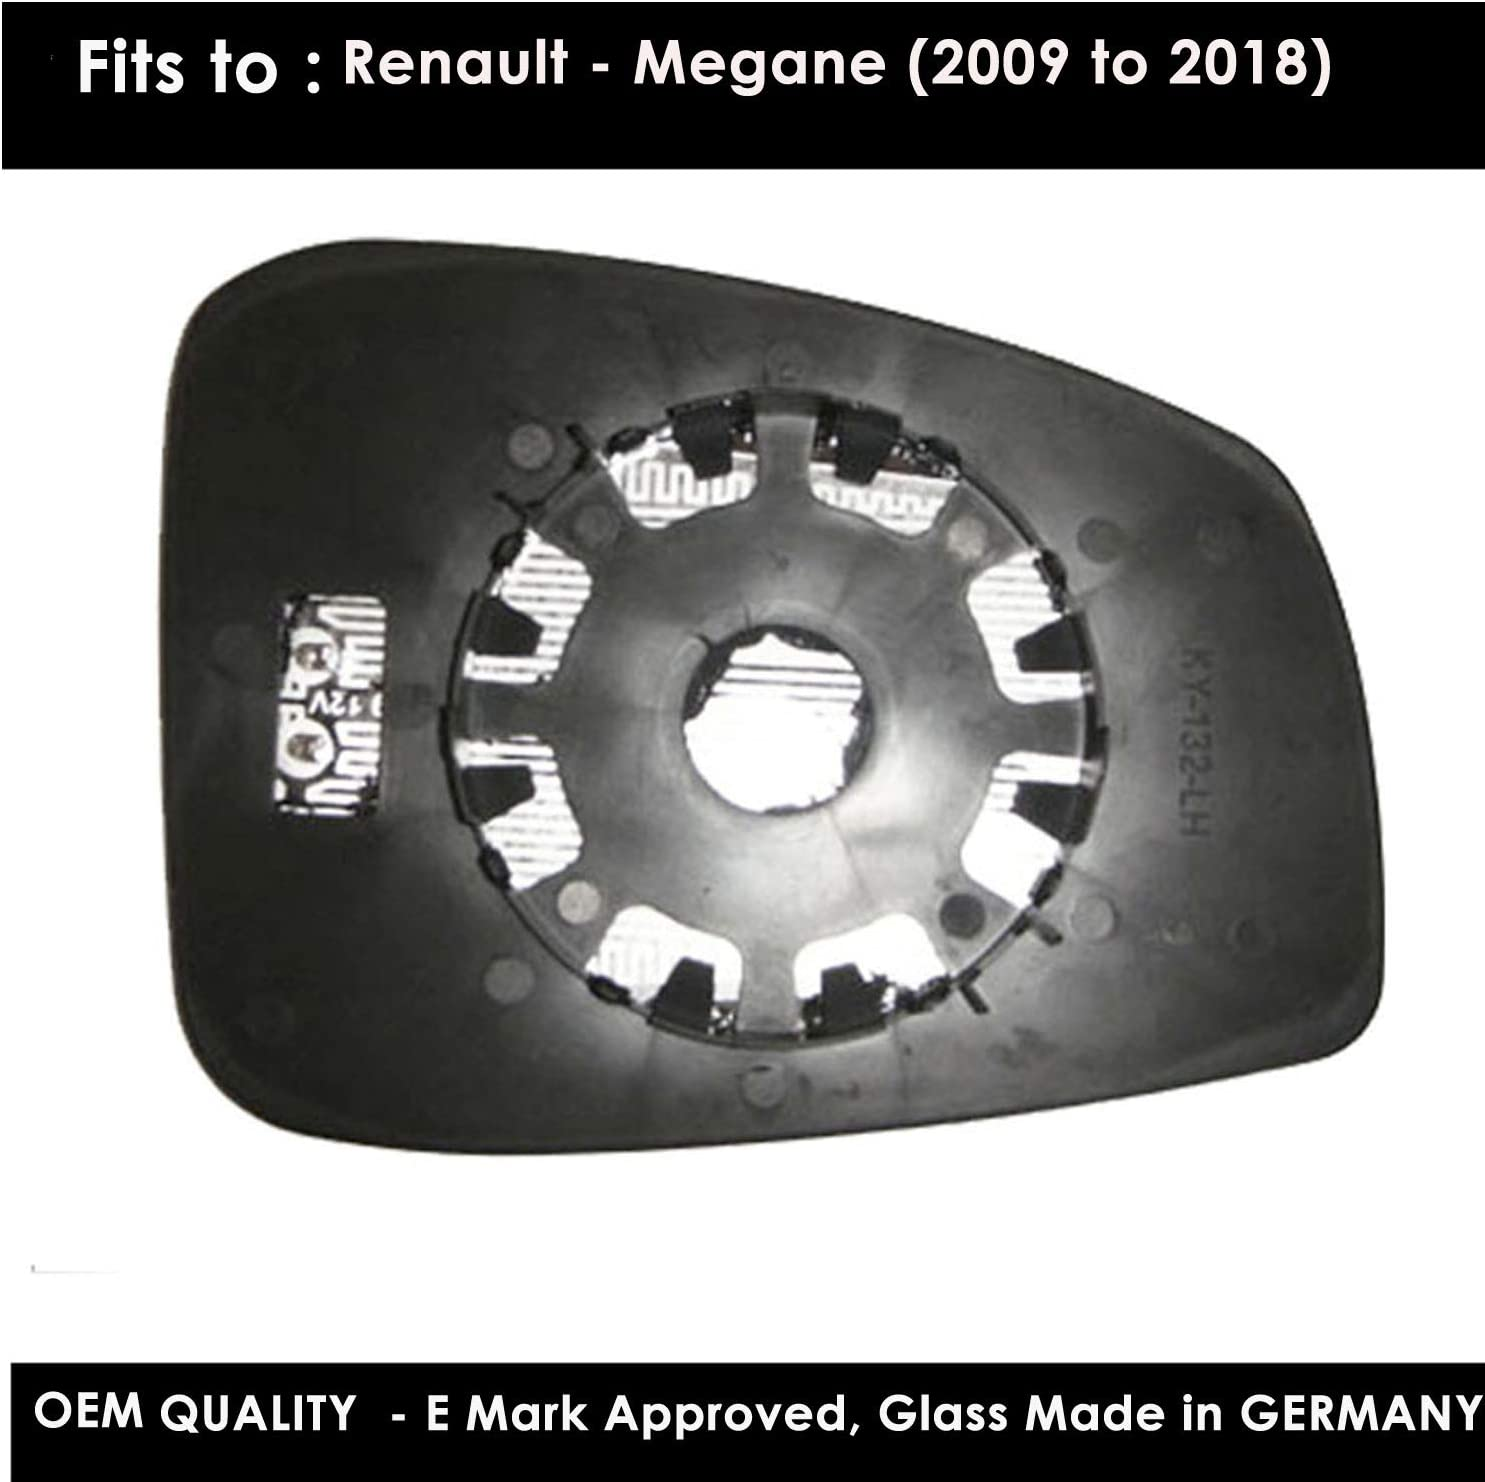 Blue Tinted Door Mirror Glass Including Base Plate LH Passenger Side REMegane 2009 to 2017 Heated